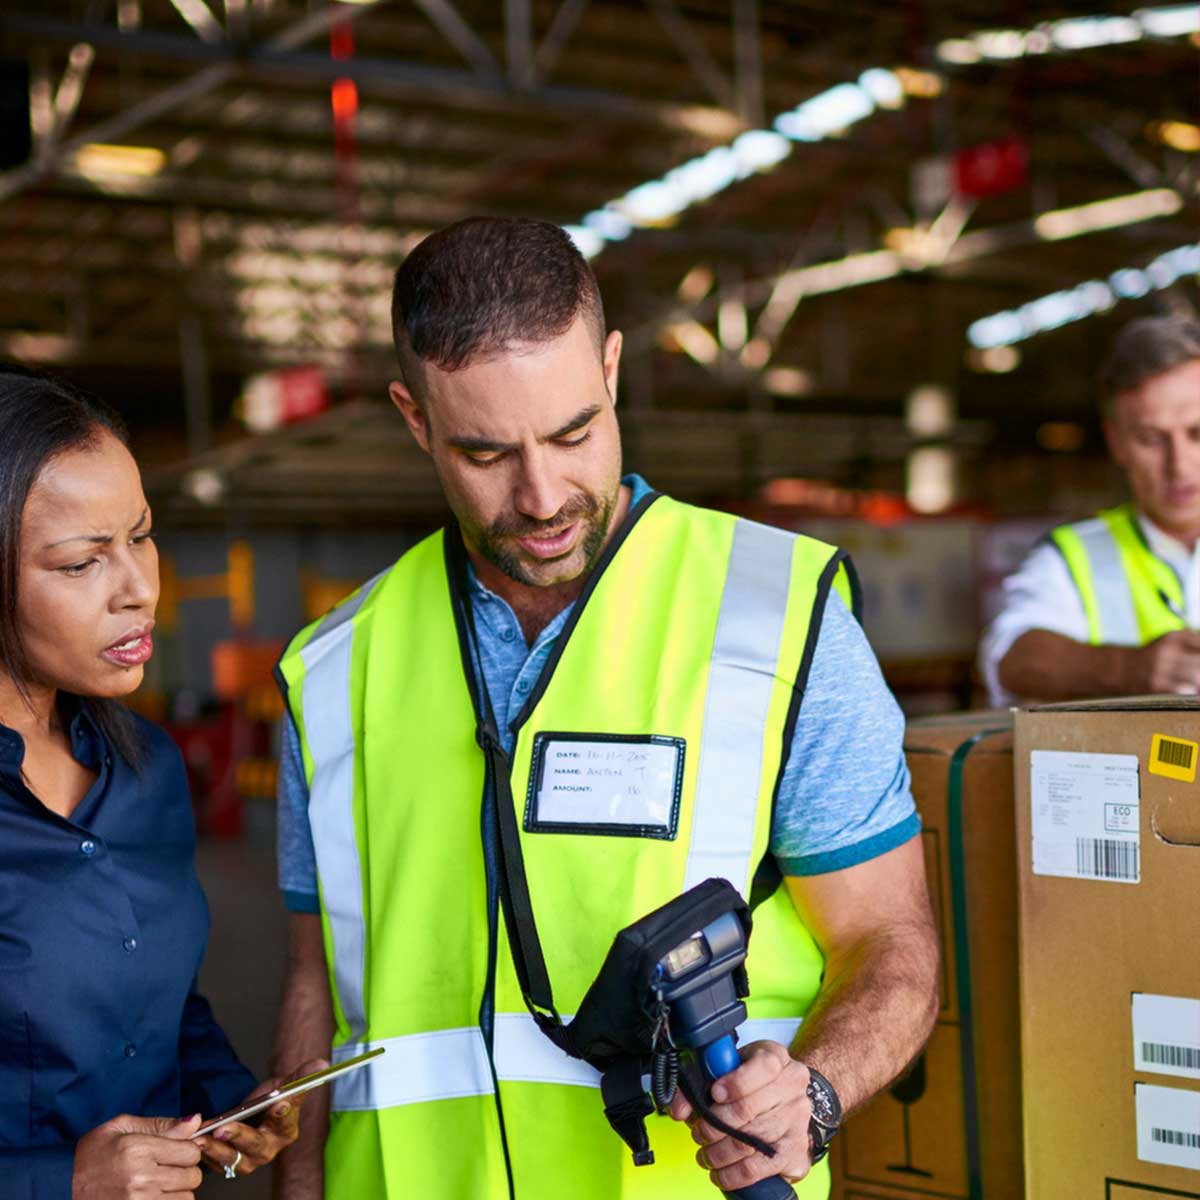 3-ways-manufacturers-can-improve-inventory-management.jpg